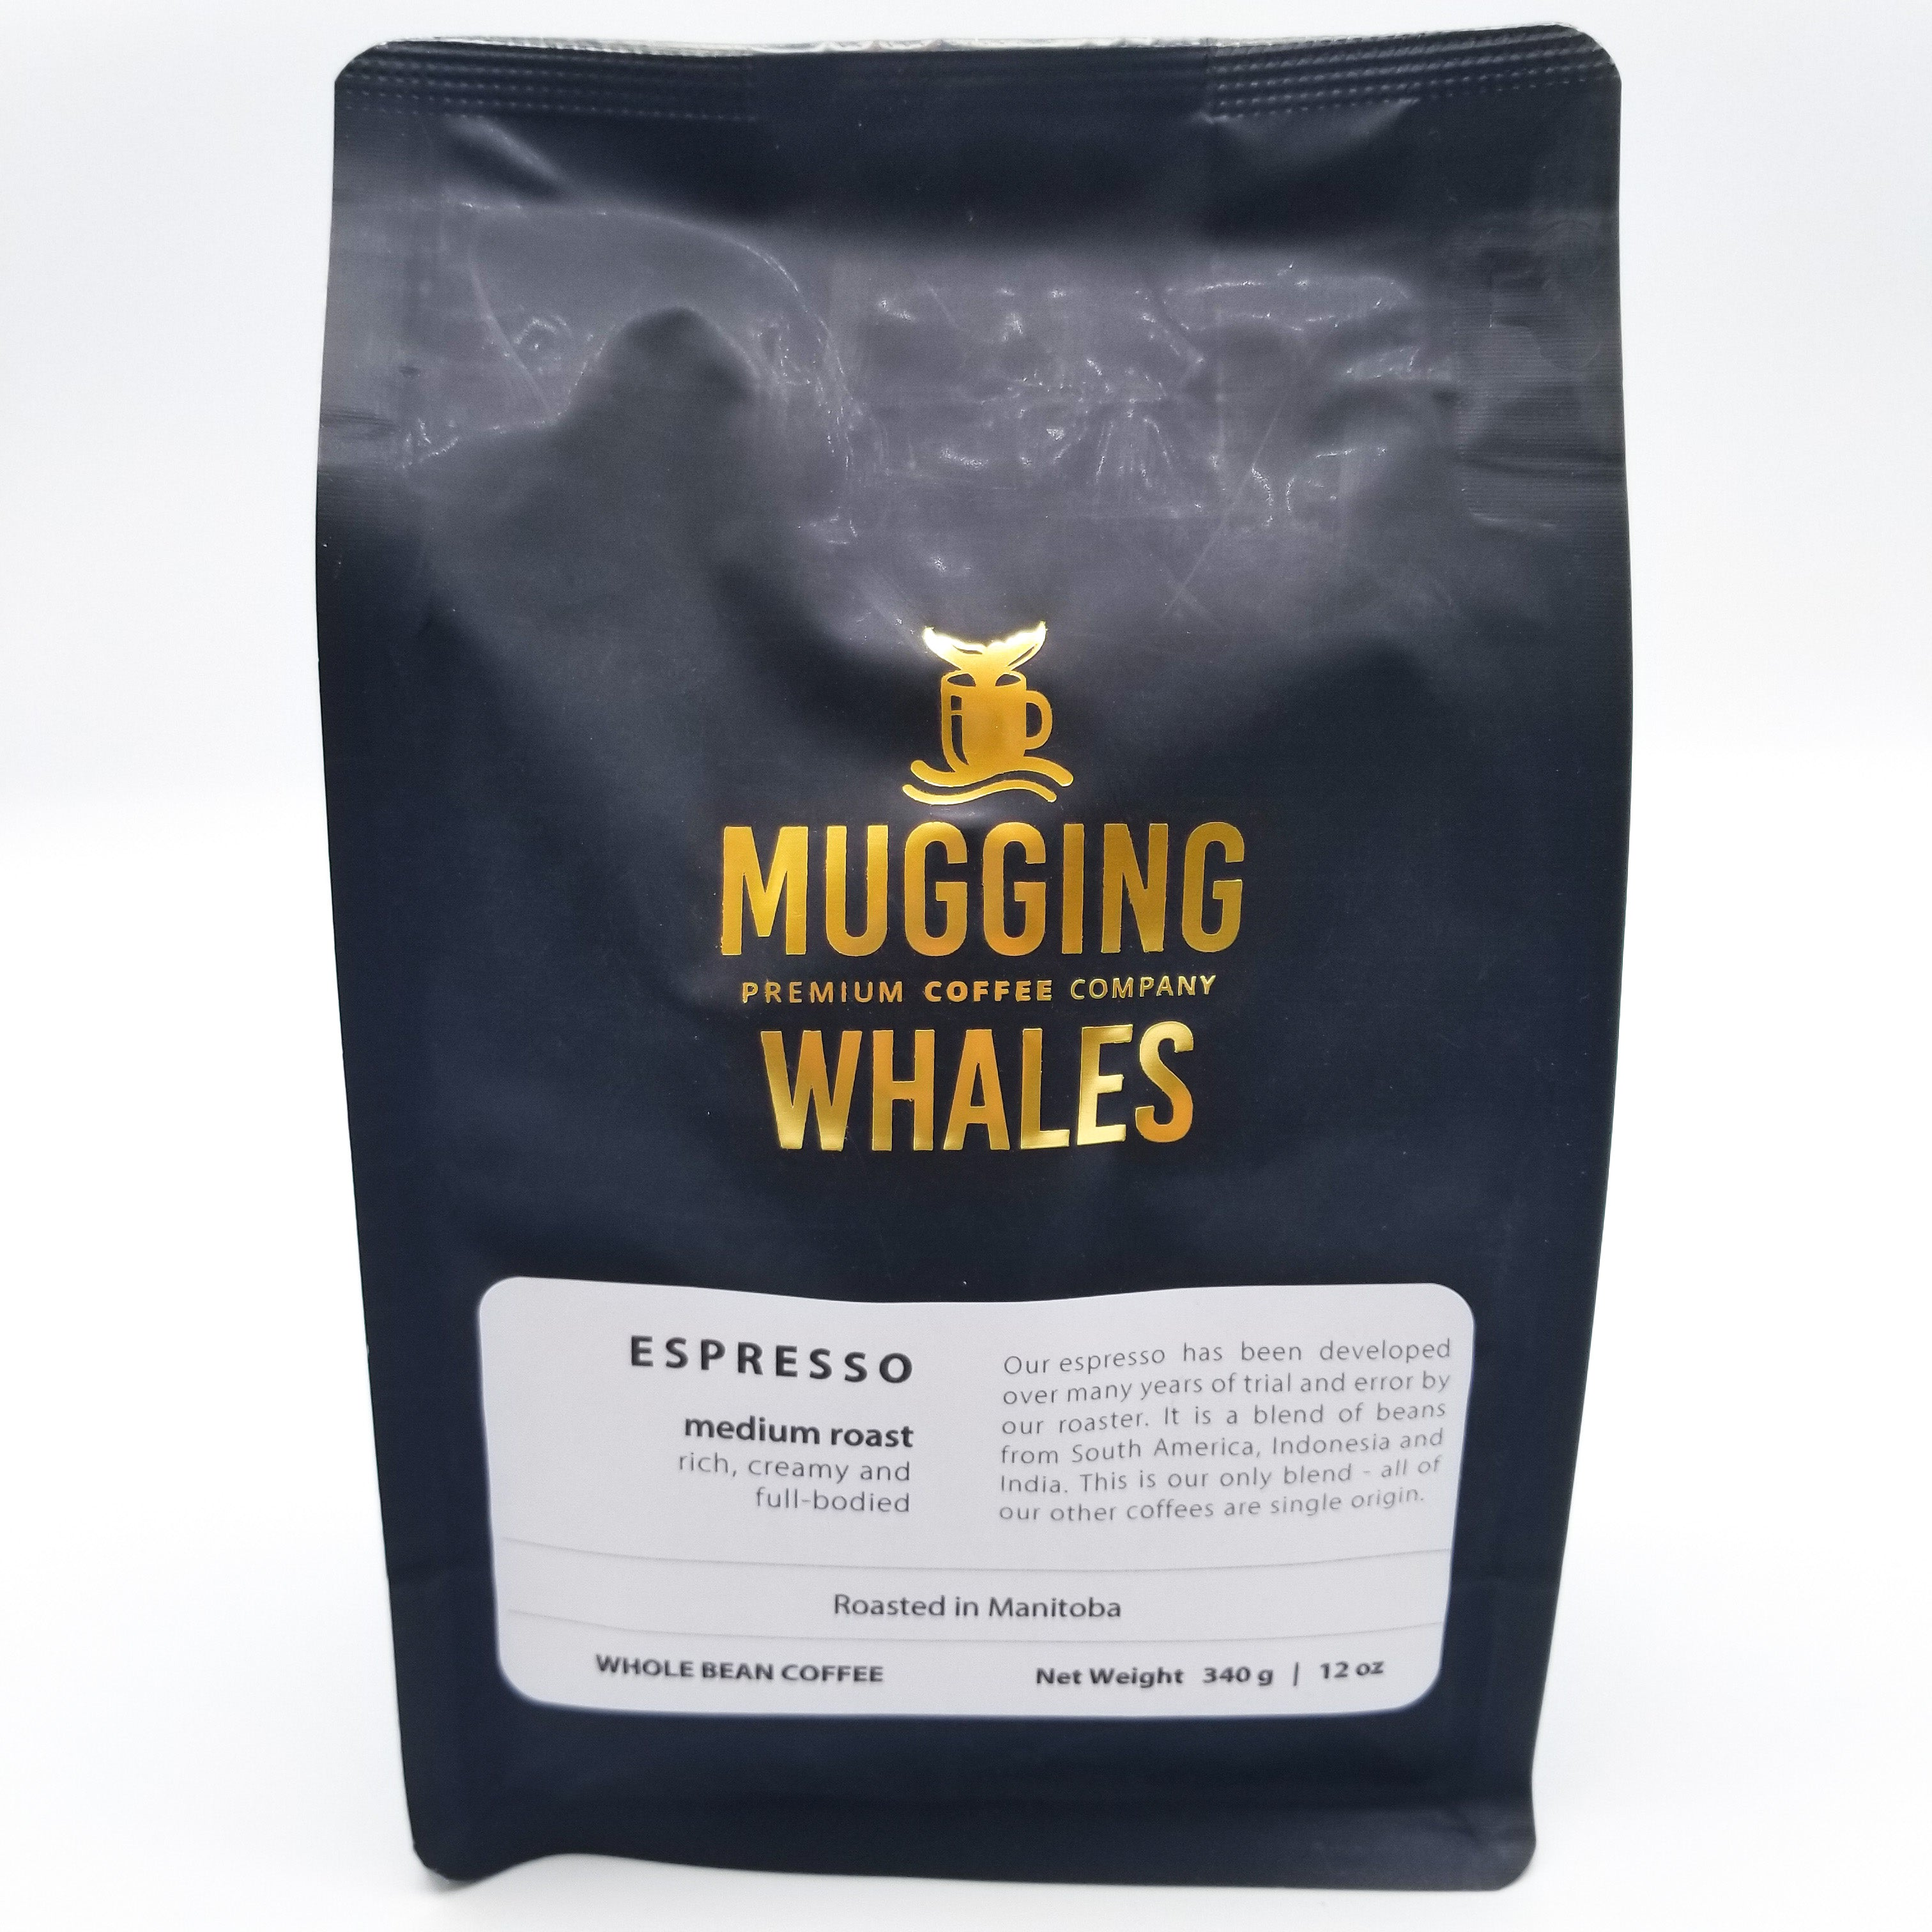 Espresso Medium Roast Coffee 340g by Mugging Whales Premium Coffee